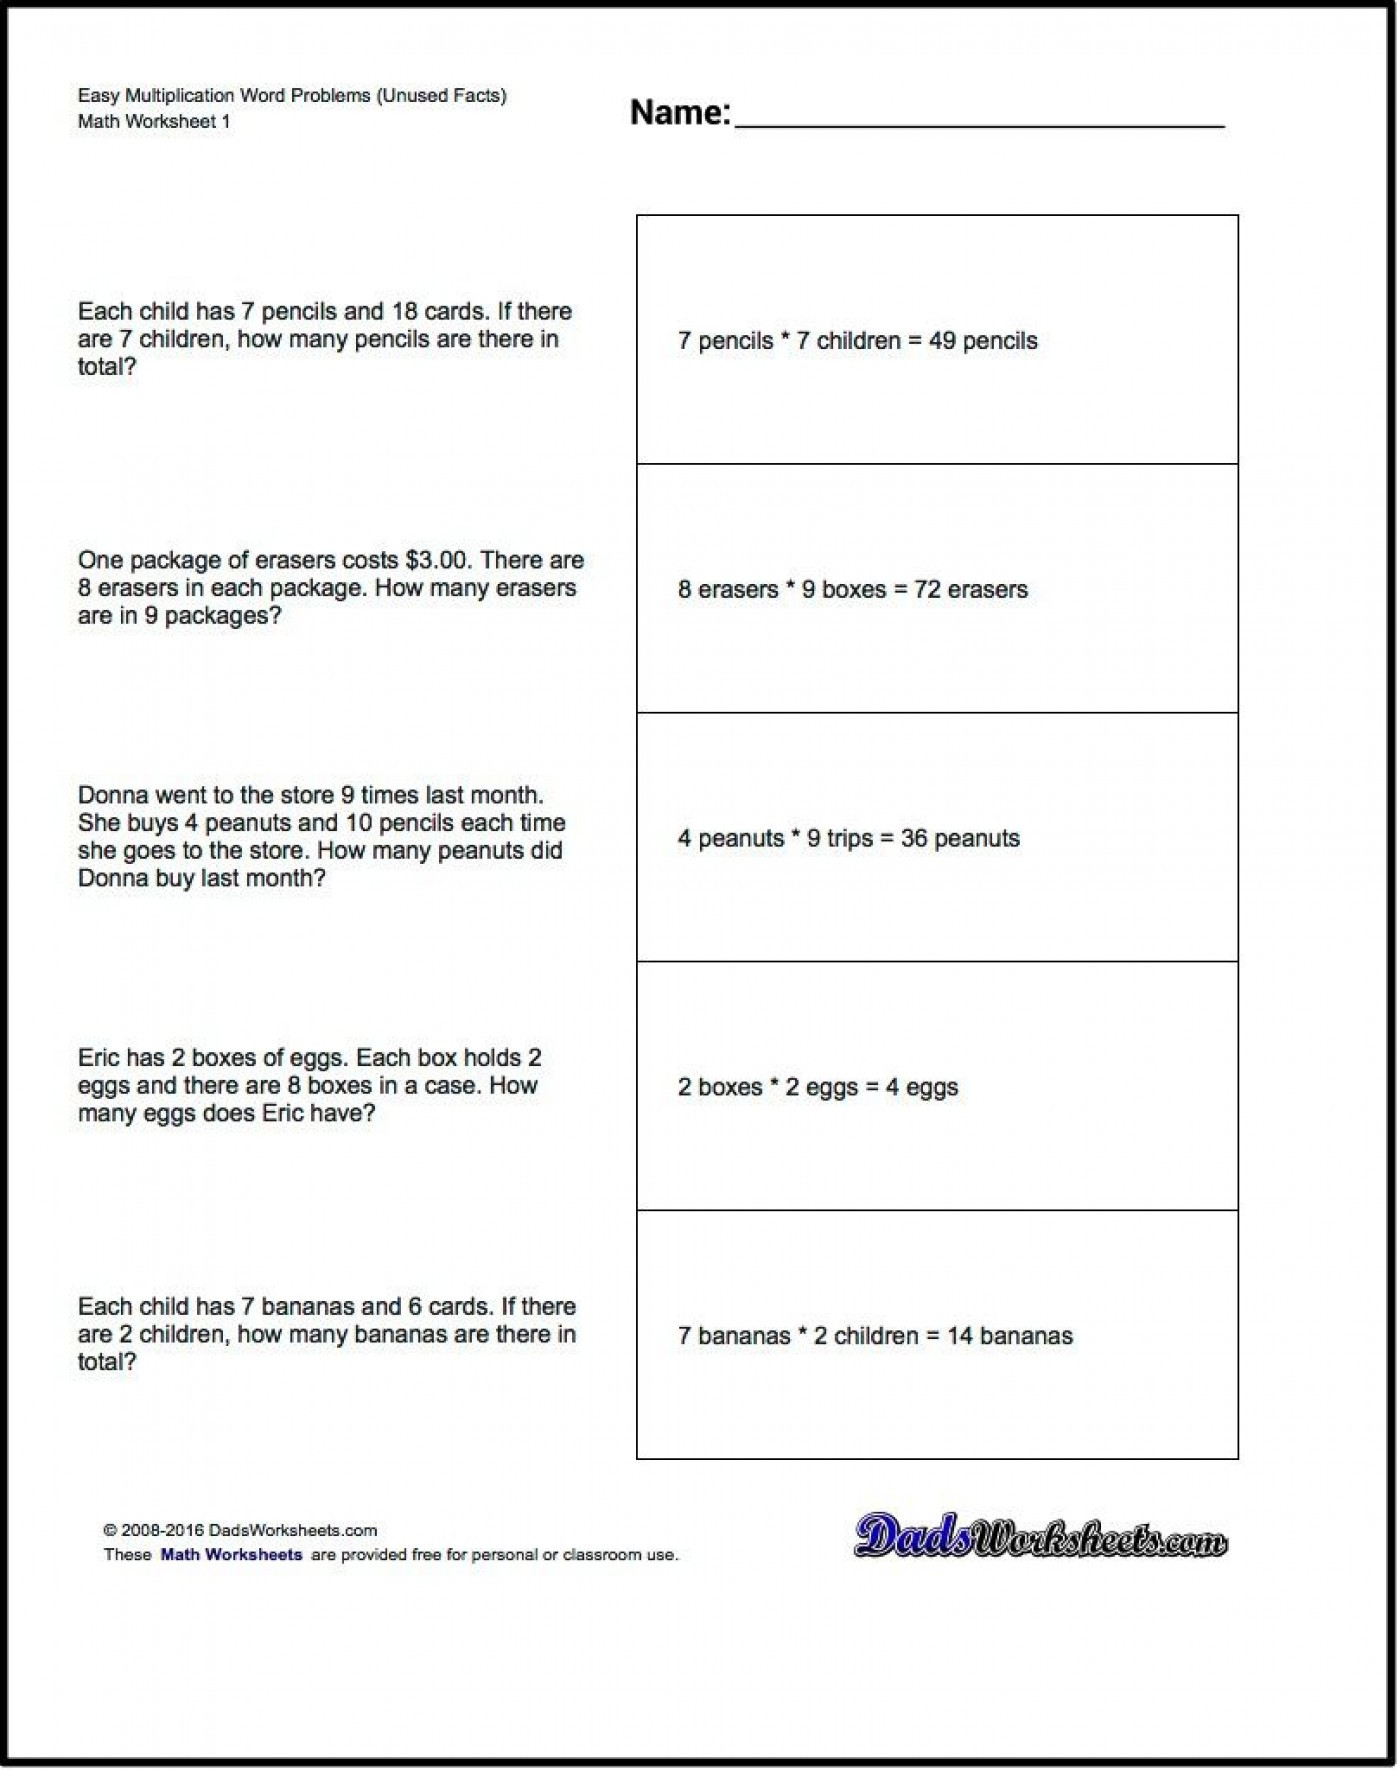 4 Free Math Worksheets Second Grade 2 Addition Add In